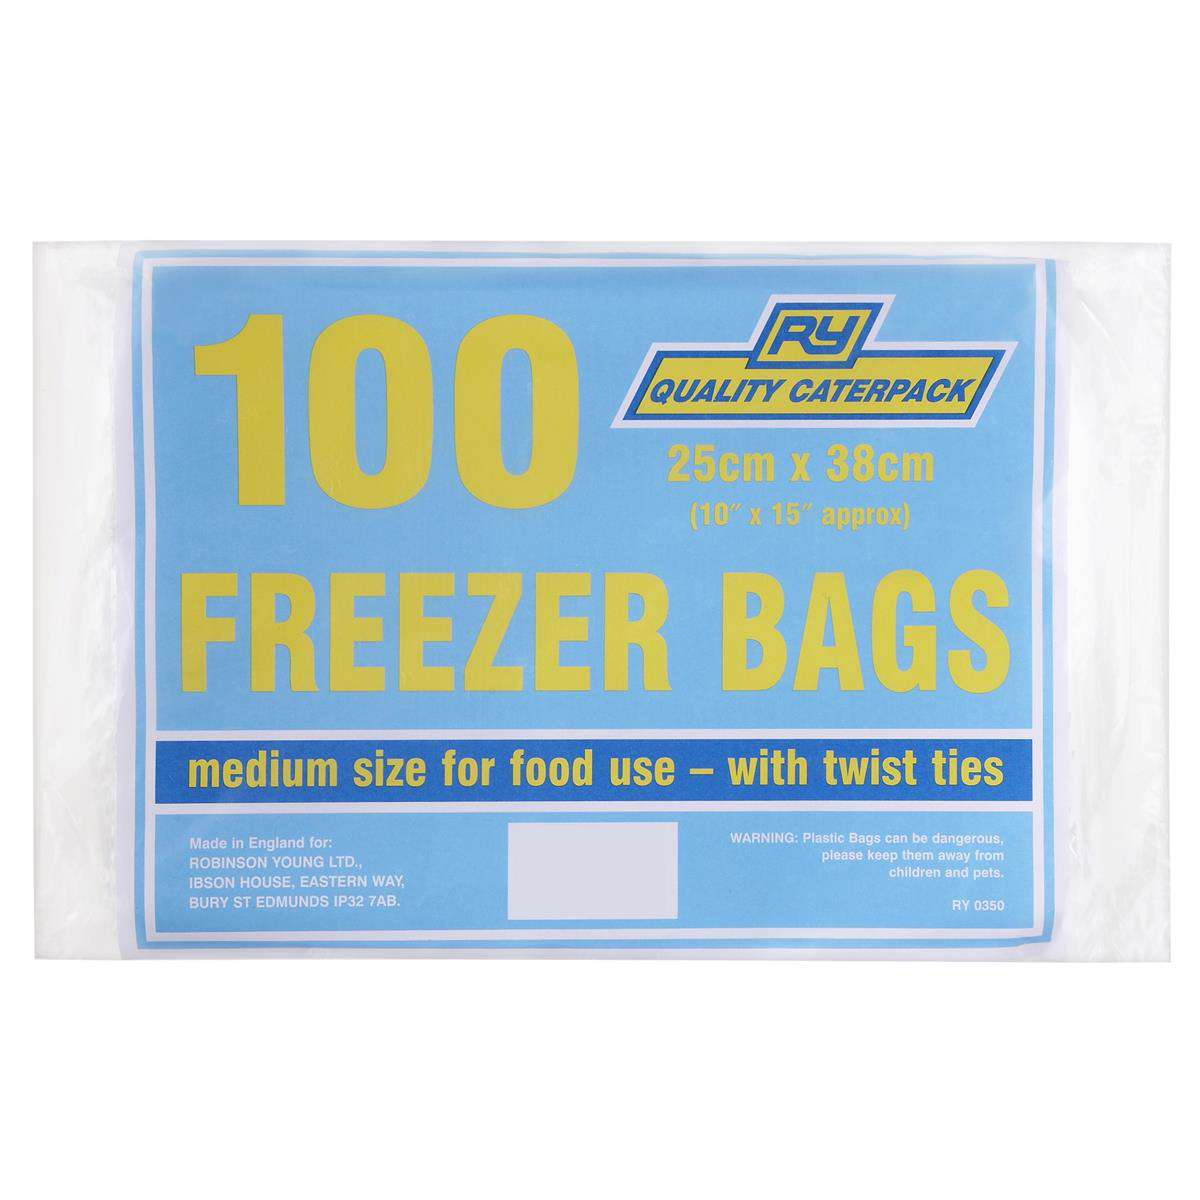 CaterPack Food/Freezer Bags Medium 250mm with Twist Ties Ref 360 Pack 100